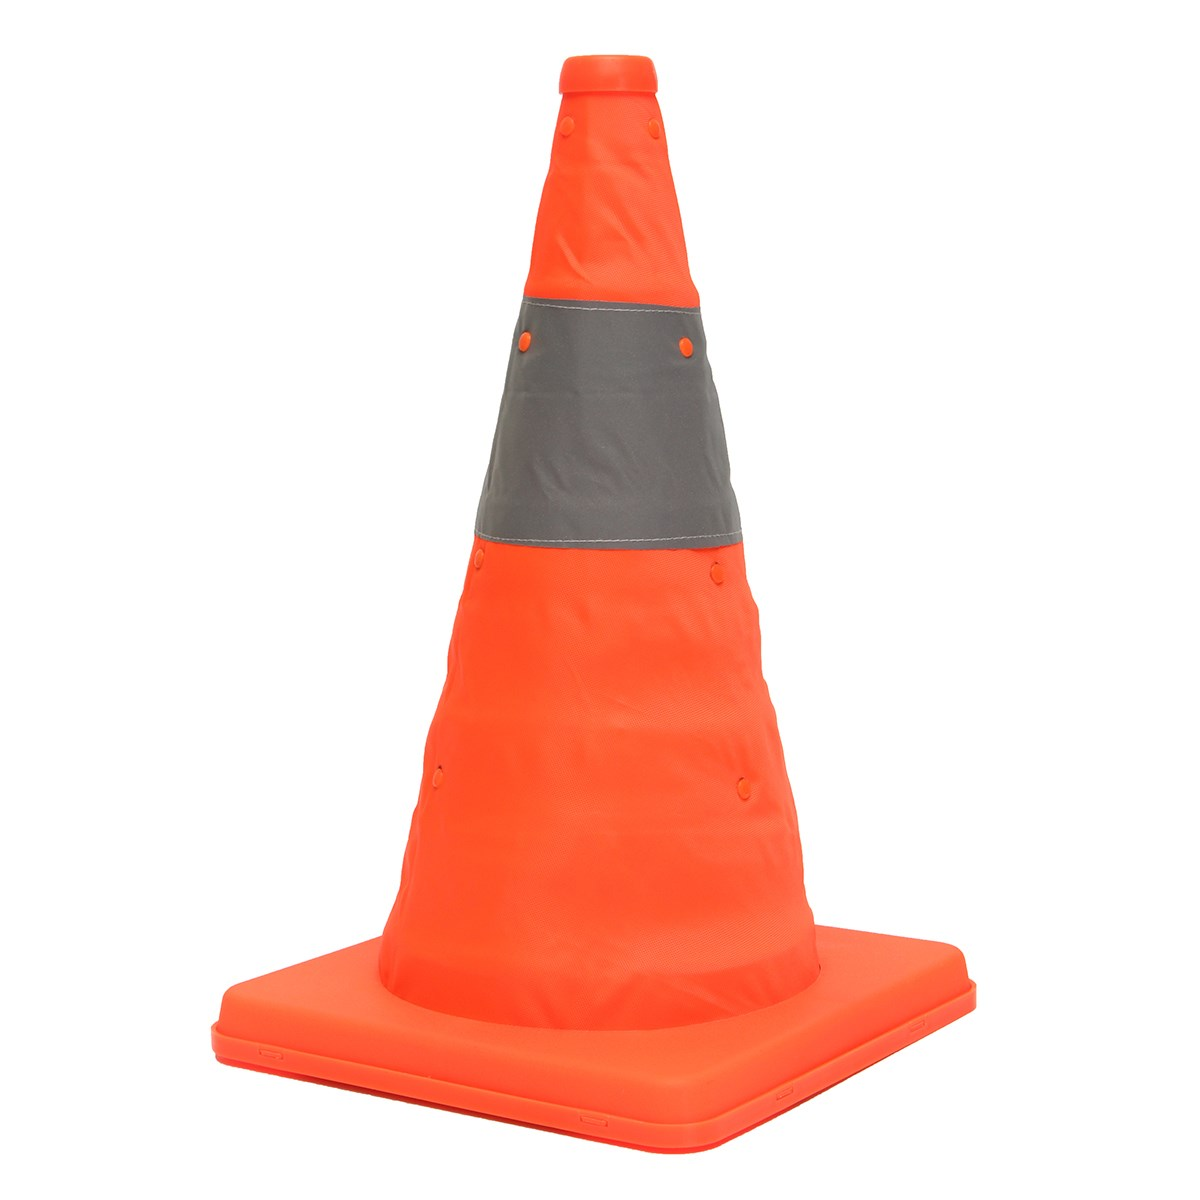 NEW Folding Collapsible Orange Road Safety Cone Traffic Pop Up Parking Multi Purpose<br><br>Aliexpress